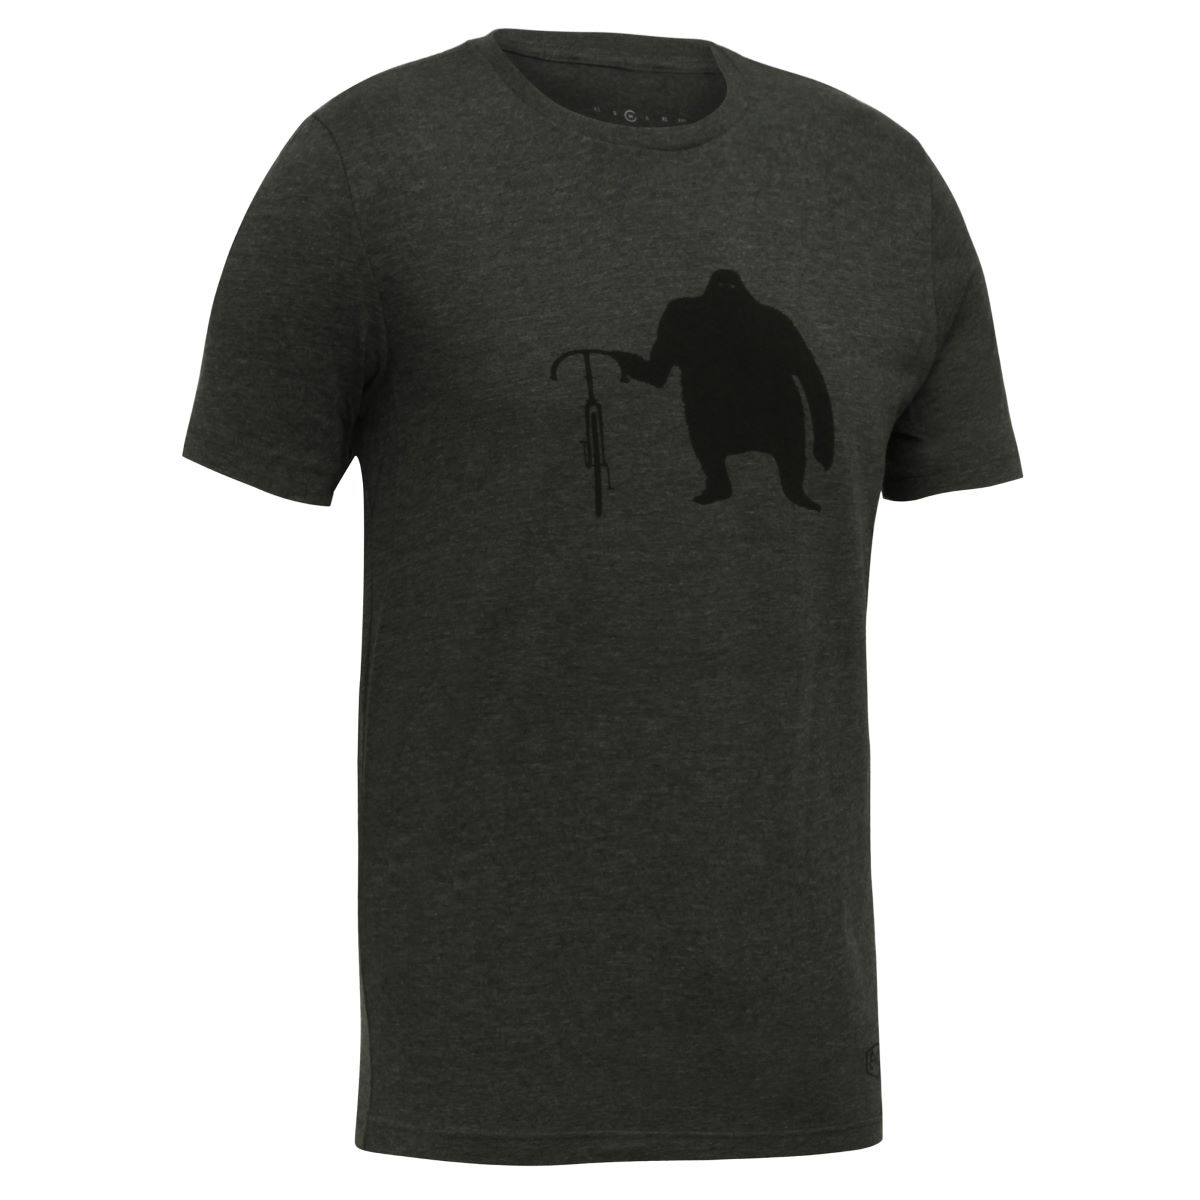 T-shirt Endurance Conspiracy Clyde - S Heathered Charcoal T-shirts